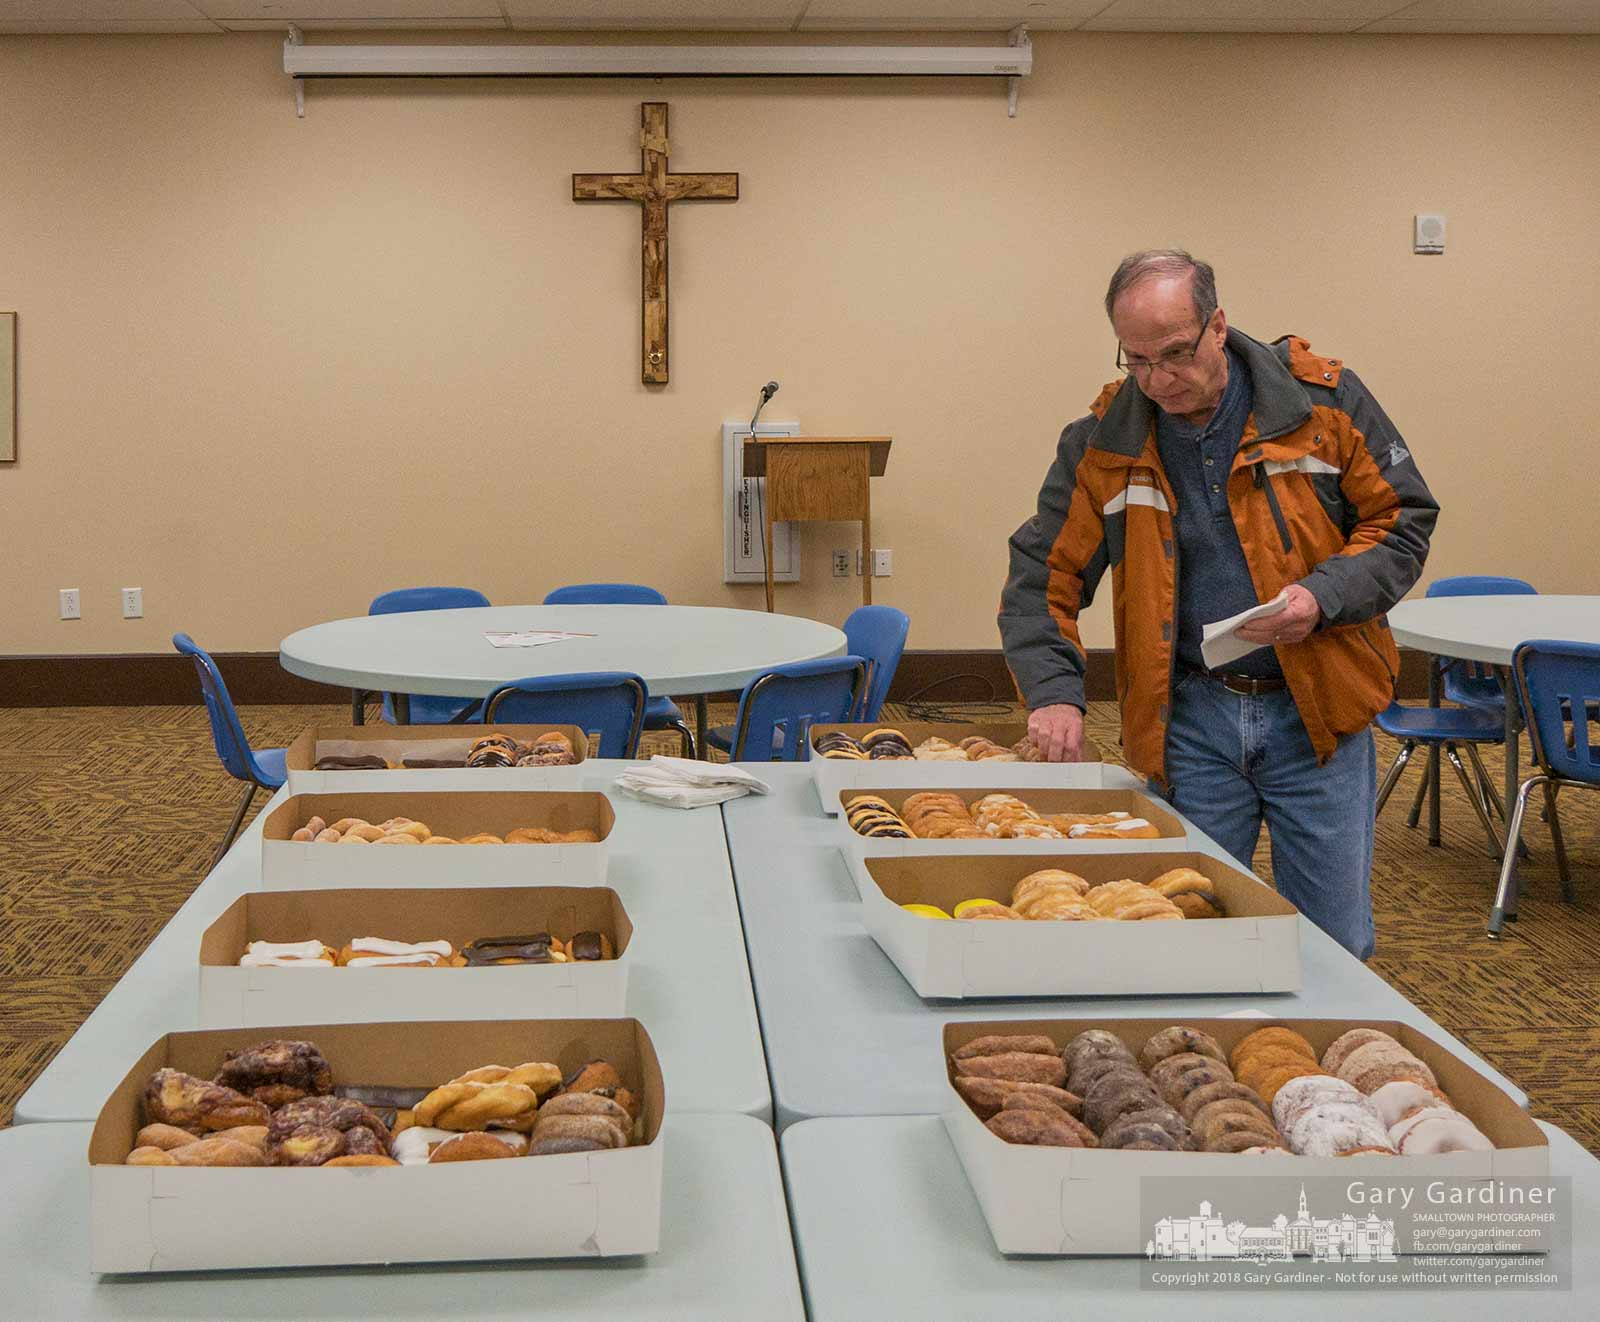 A parishioner walks around a table covered with donuts used as a church group's fundraiser after morning Mass at St. Paul Catholic Church in Westerville. My Final Photo for Jan. 7, 2018.